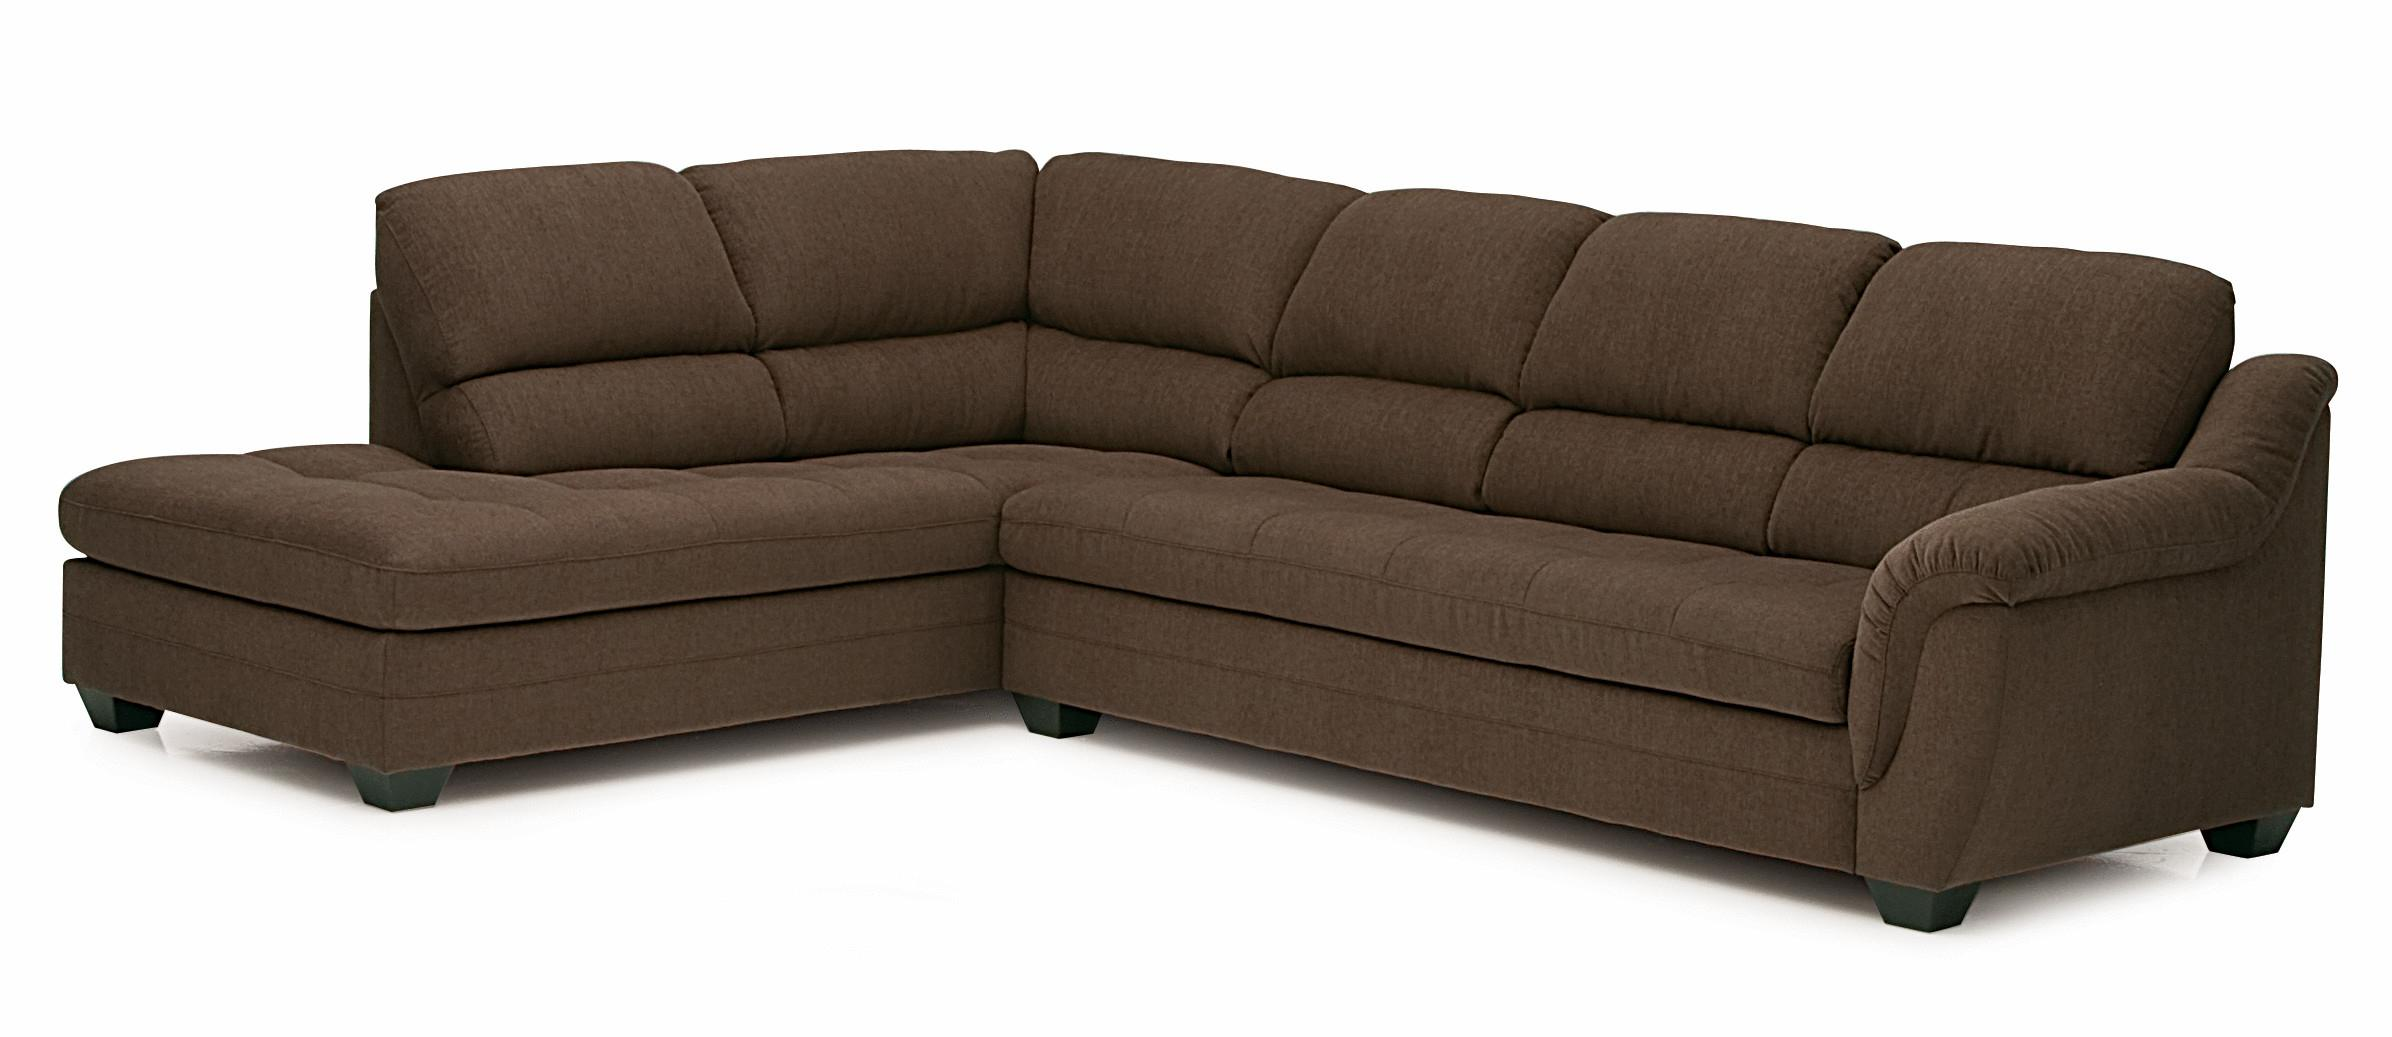 Cincinnati Sectional Sofa With Open Chaise End By Palliser